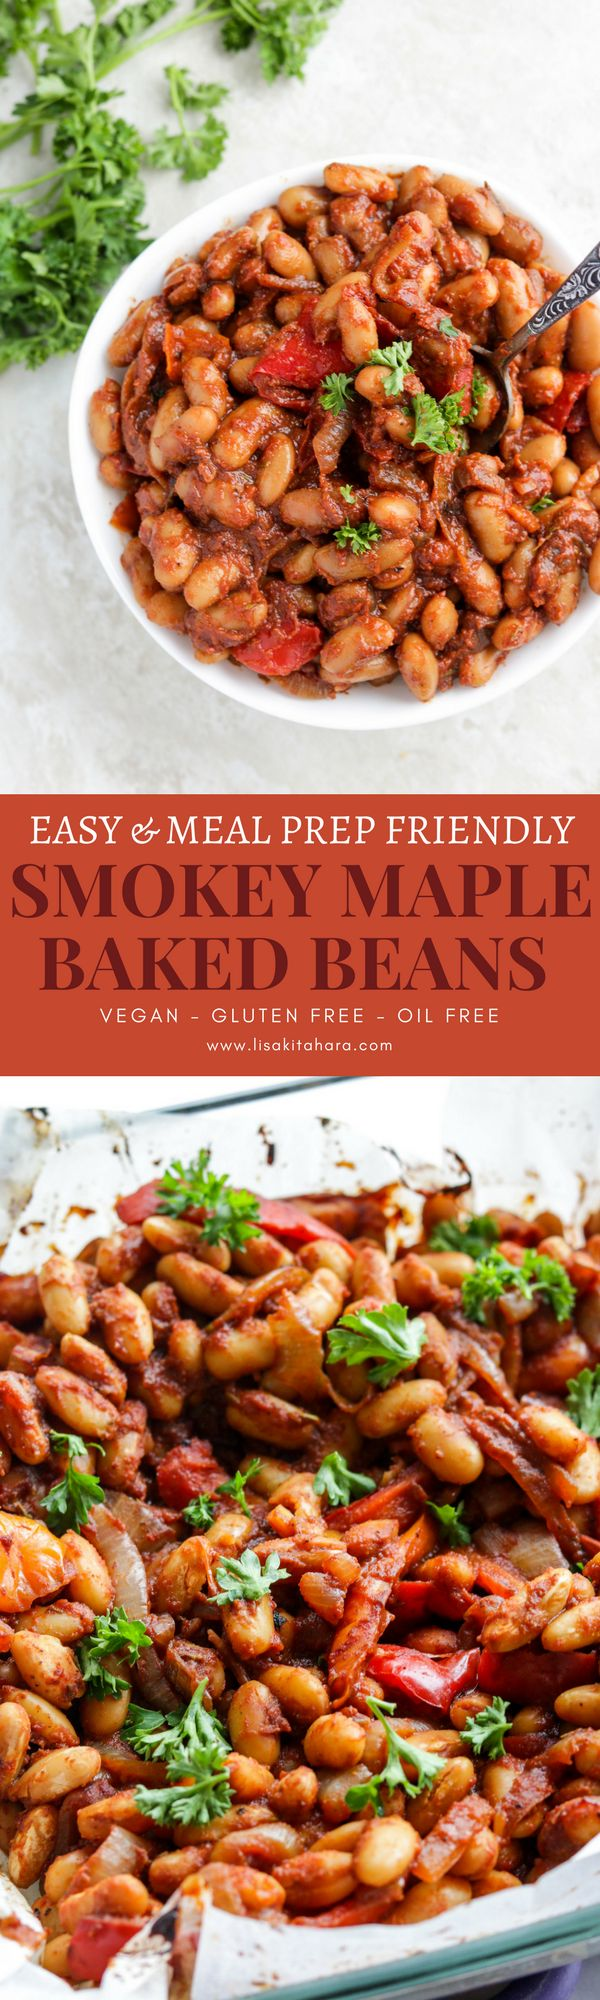 These Vegan Smokey Maple Baked Beans are naturally sweetened with pure Canadian maple syrup with a perfect balance of smokiness from the paprika. This dish is so easy to make and can be eaten for any meal alongside with crunchy toasty bread and on a bed of freshly streamed white rice. Packed with plant based protein, the versatility of this dish makes it perfect for weekly meal prep!